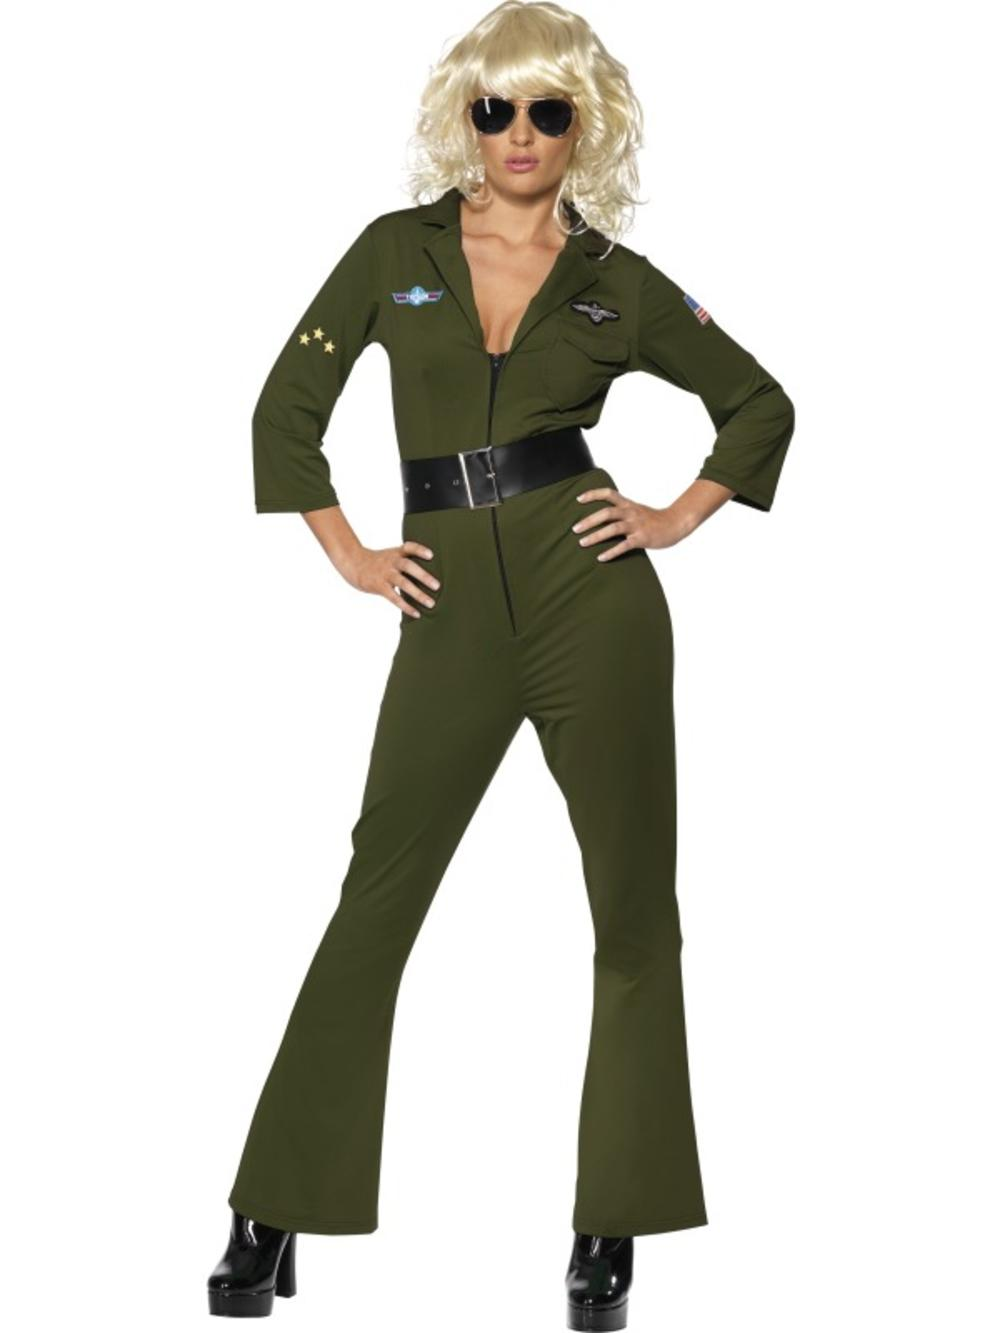 Top Gun Pilot Ladies Fancy Dress 1980s Army Air Force Adults Costume Outfit